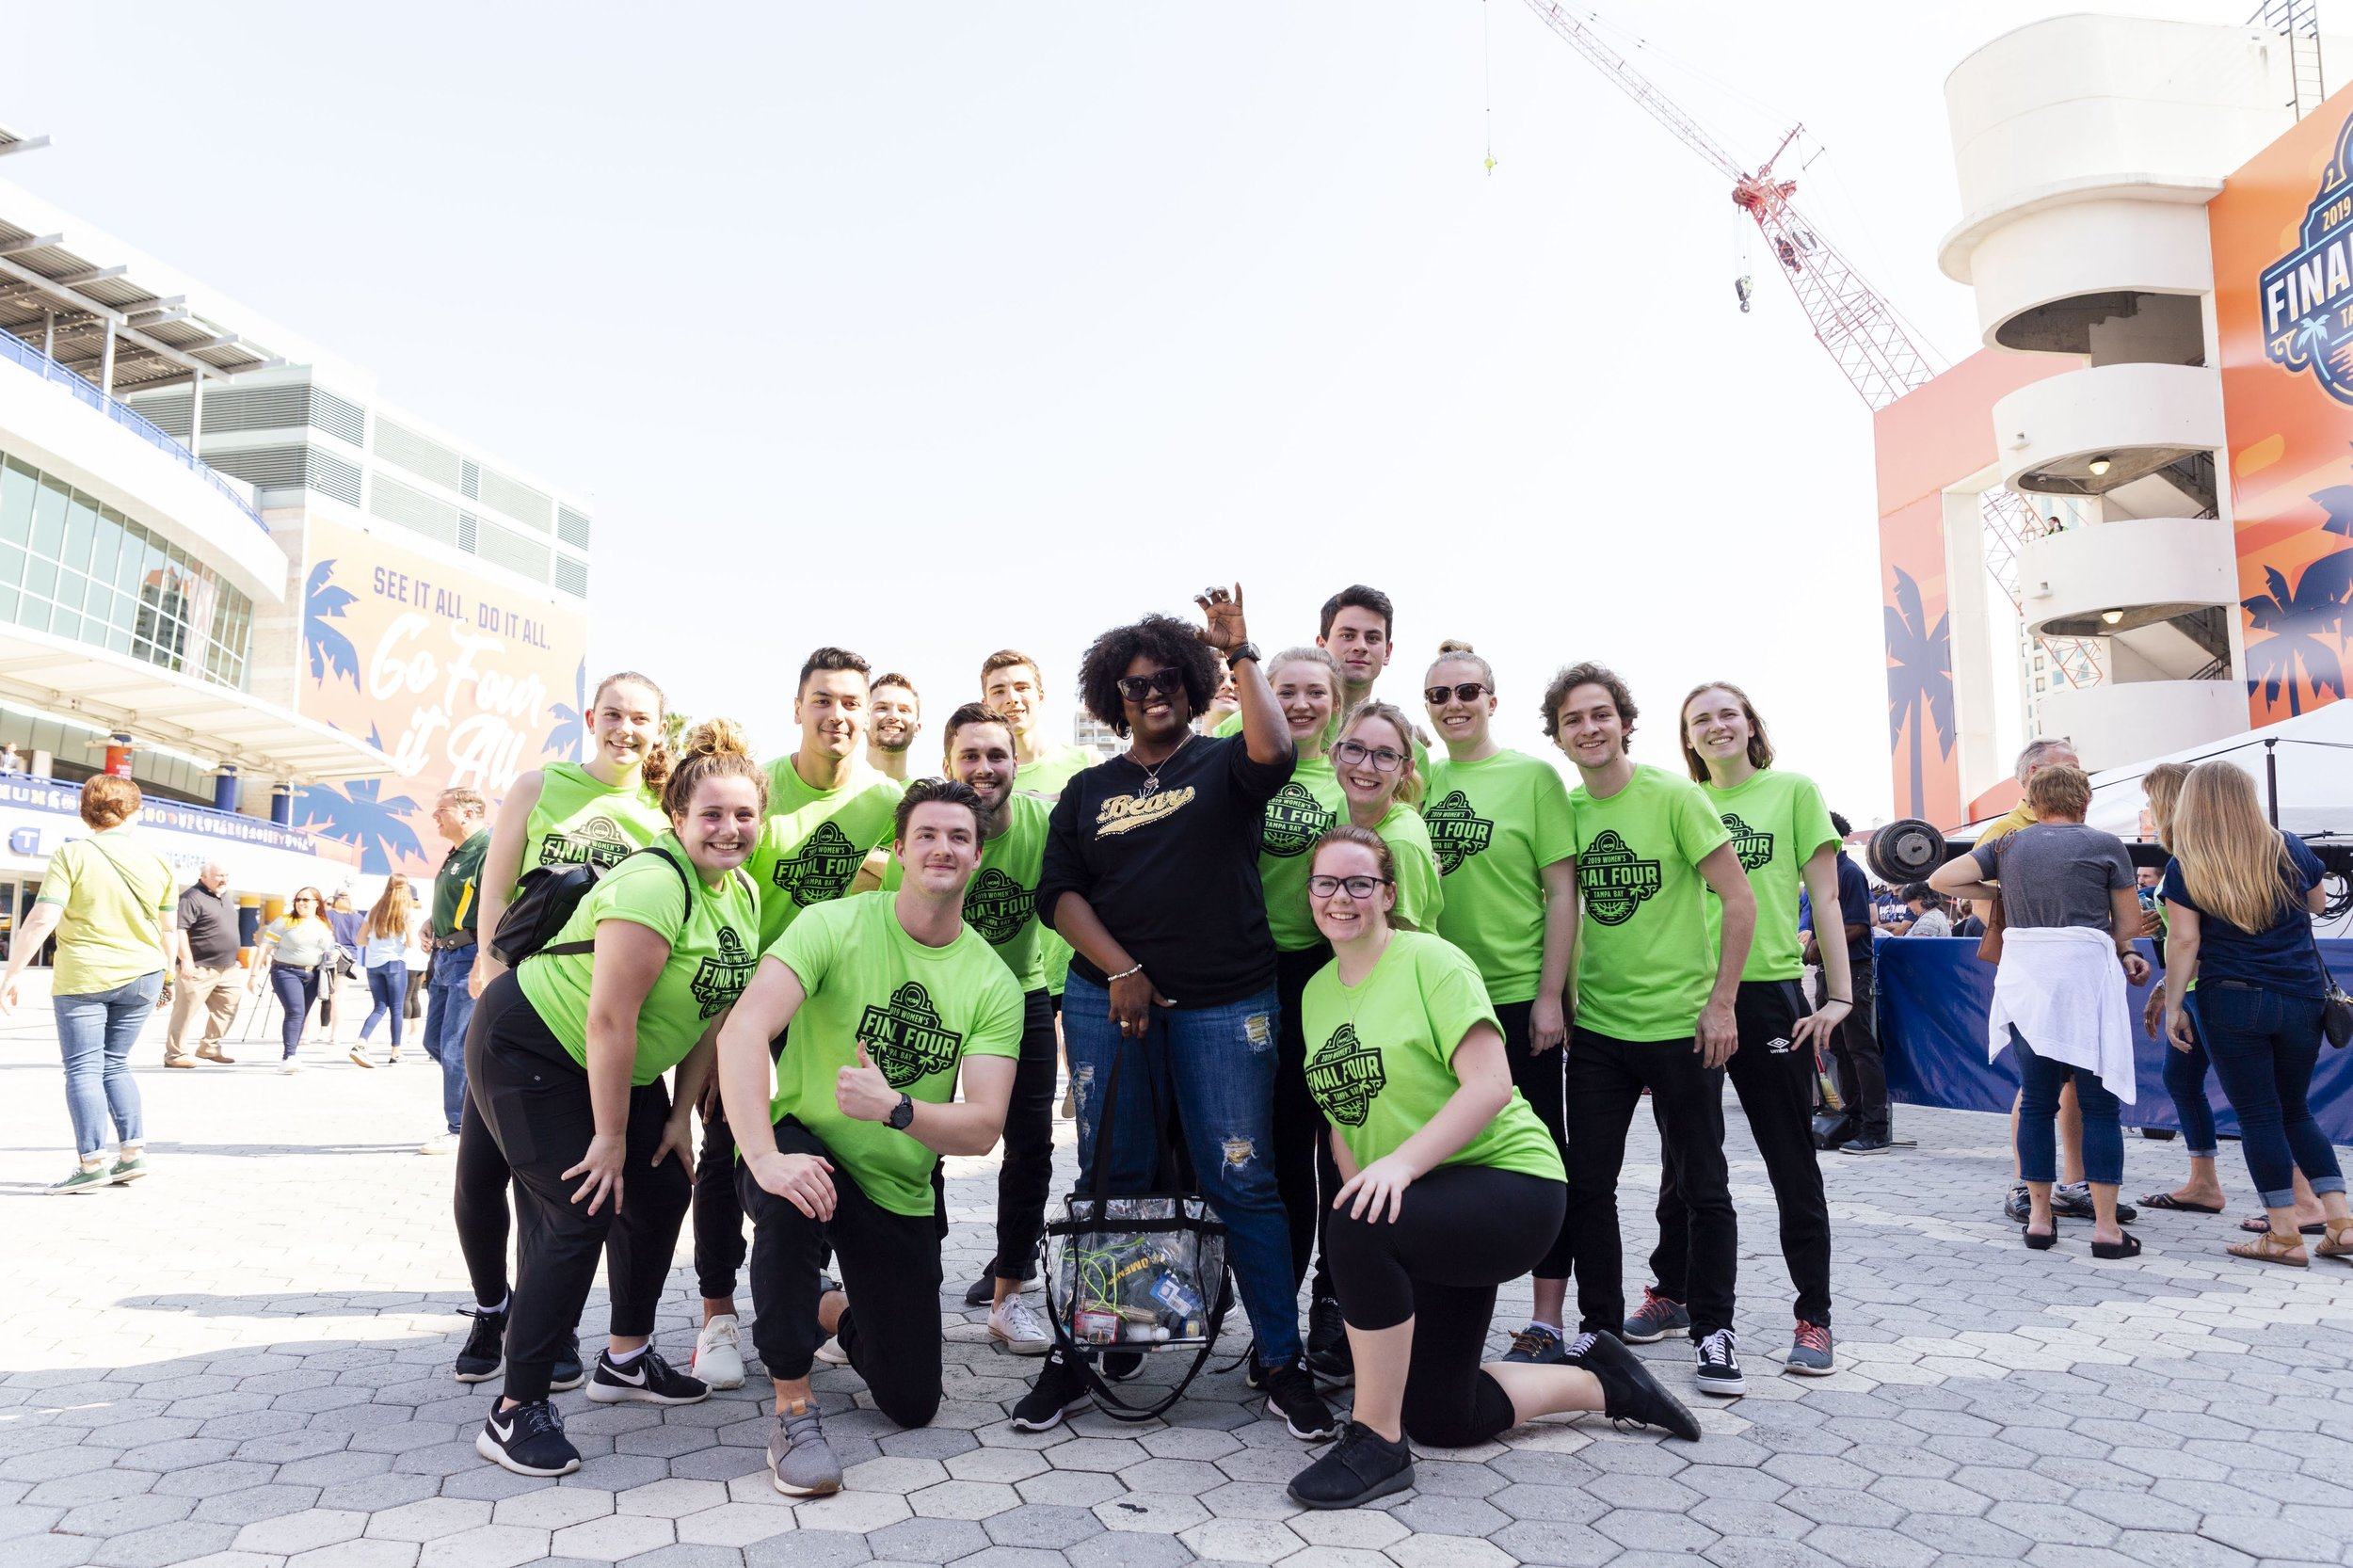 The 2019 Women's Final Four 'Sustainability Squad' volunteers in Tampa Bay recognized fans who exhibited sustainable behaviors like refilling water bottles and sorting their waste properly with waste preventing rewards. (Photo: Tampa Bay Local Organizing Committee)